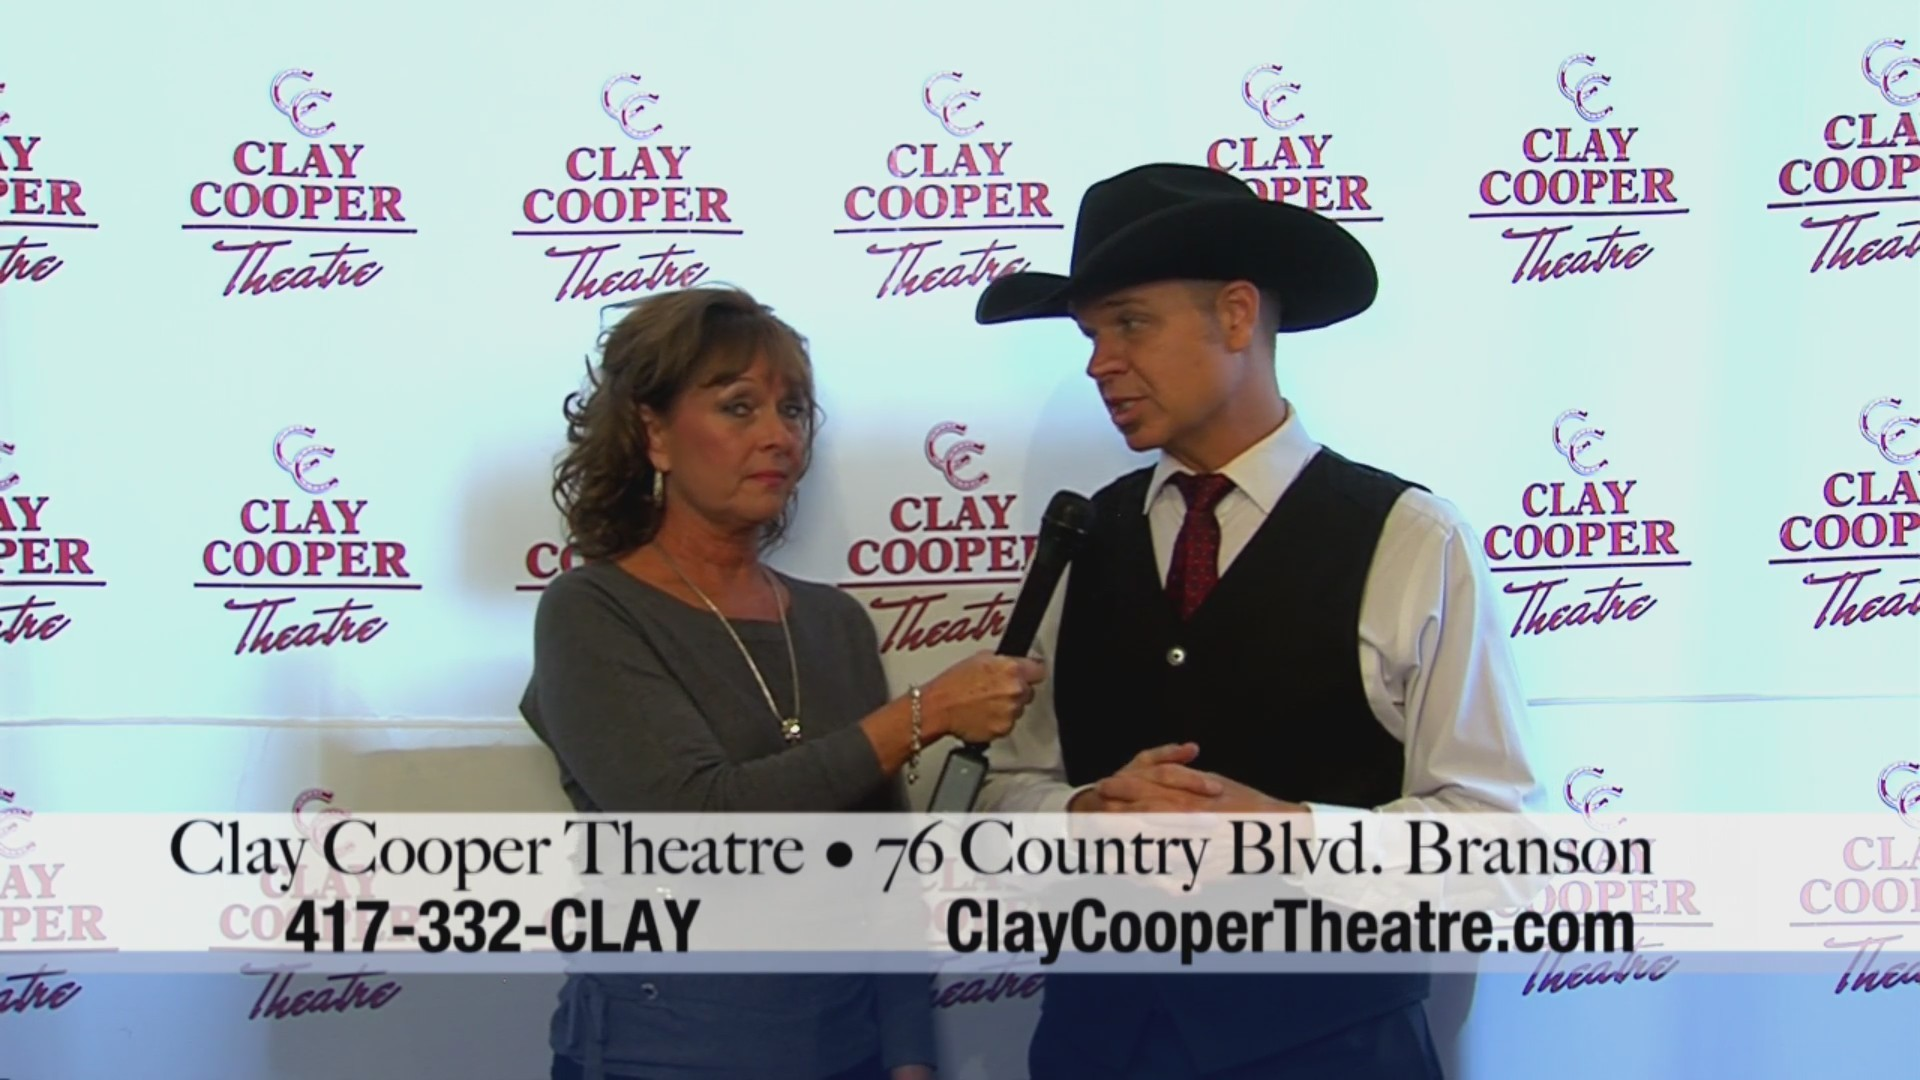 Clay Cooper Theater - Christmas 2018 (111618)